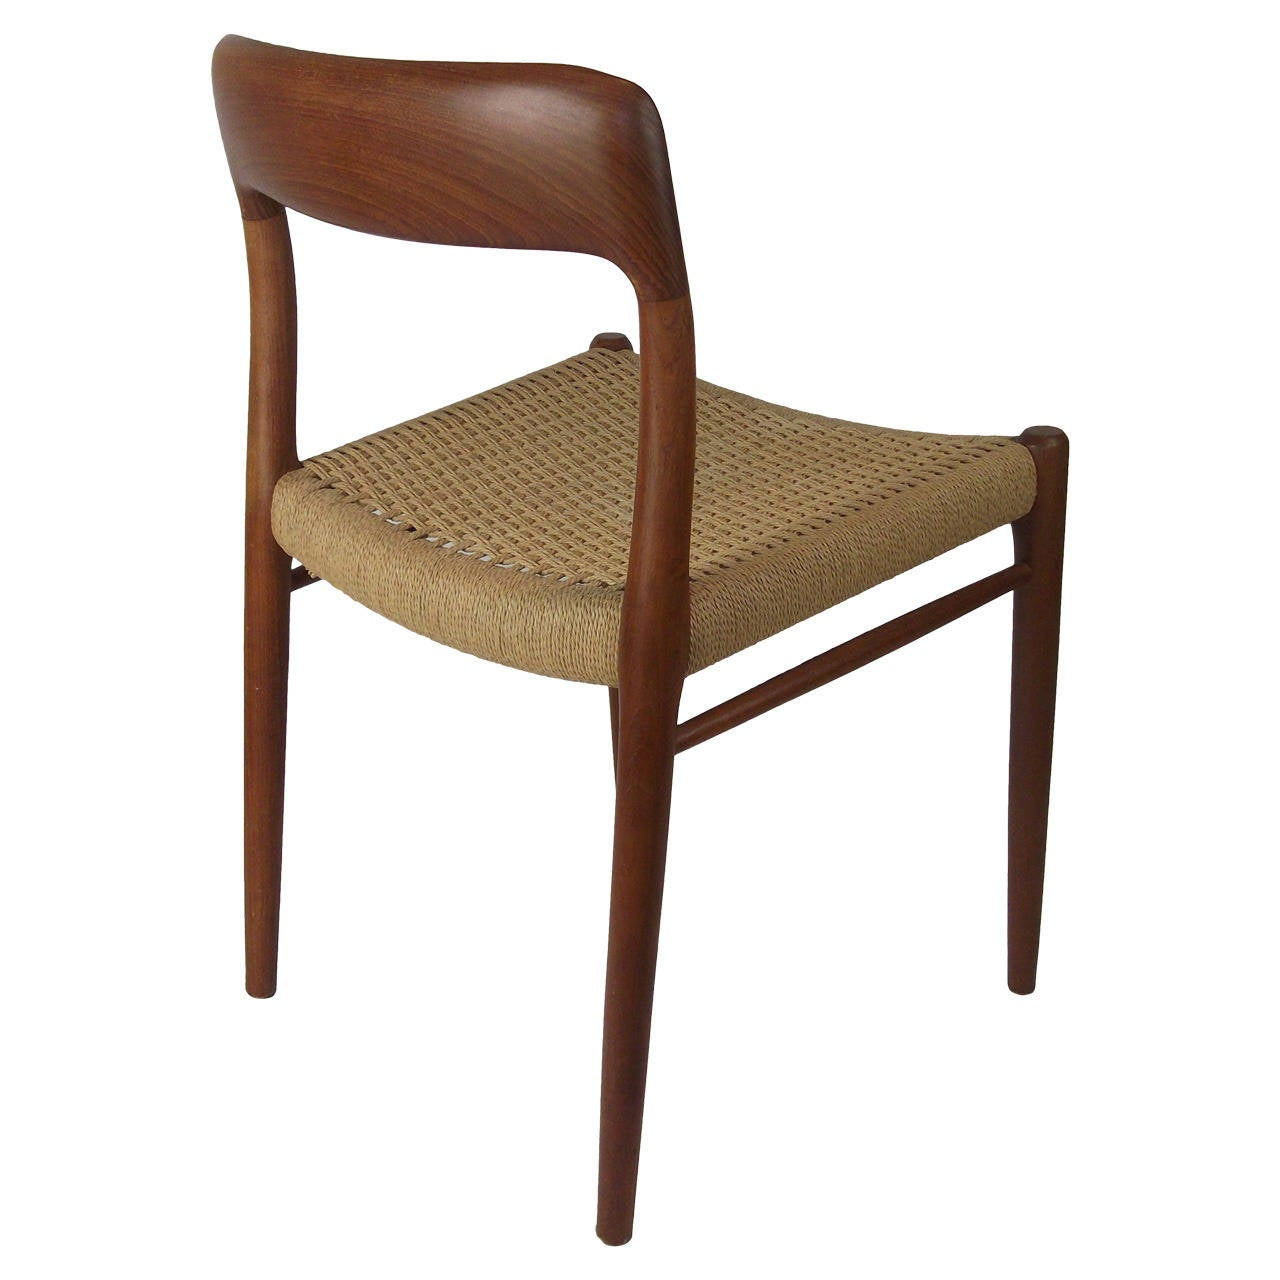 Vintage danish teak j l moller chair model at stdibs